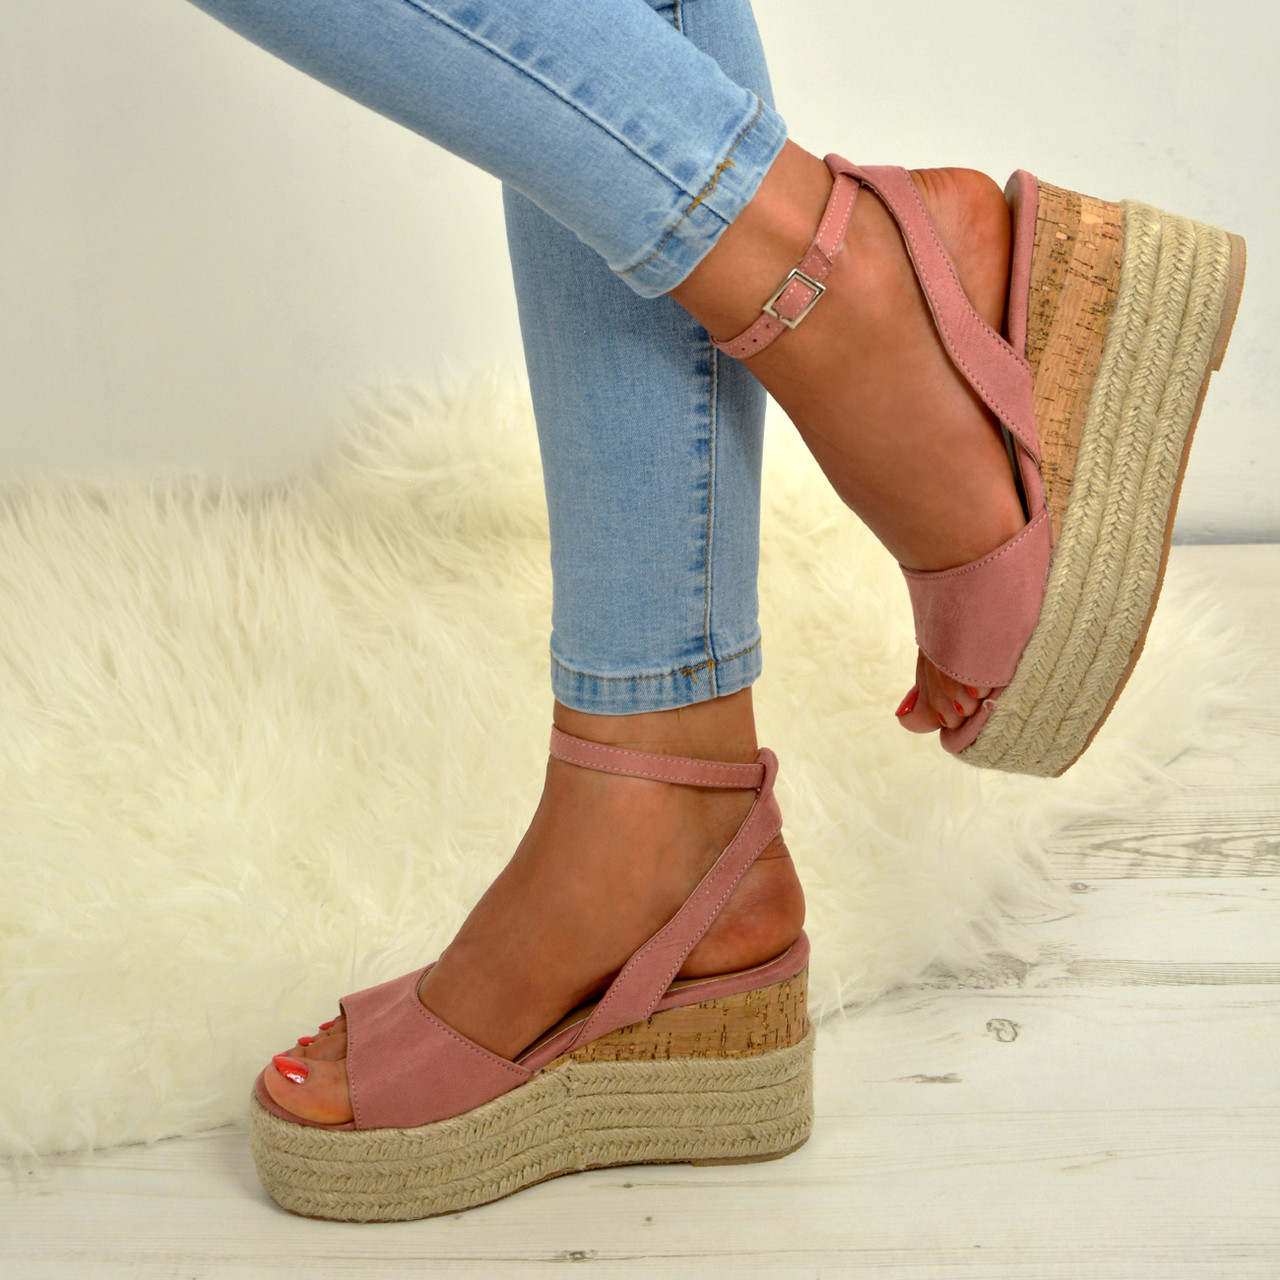 67fa3a1f0ba Ladies Womens Ankle Strap Flatform Wedge Platforms Sandals Espadrille Party  Shoe